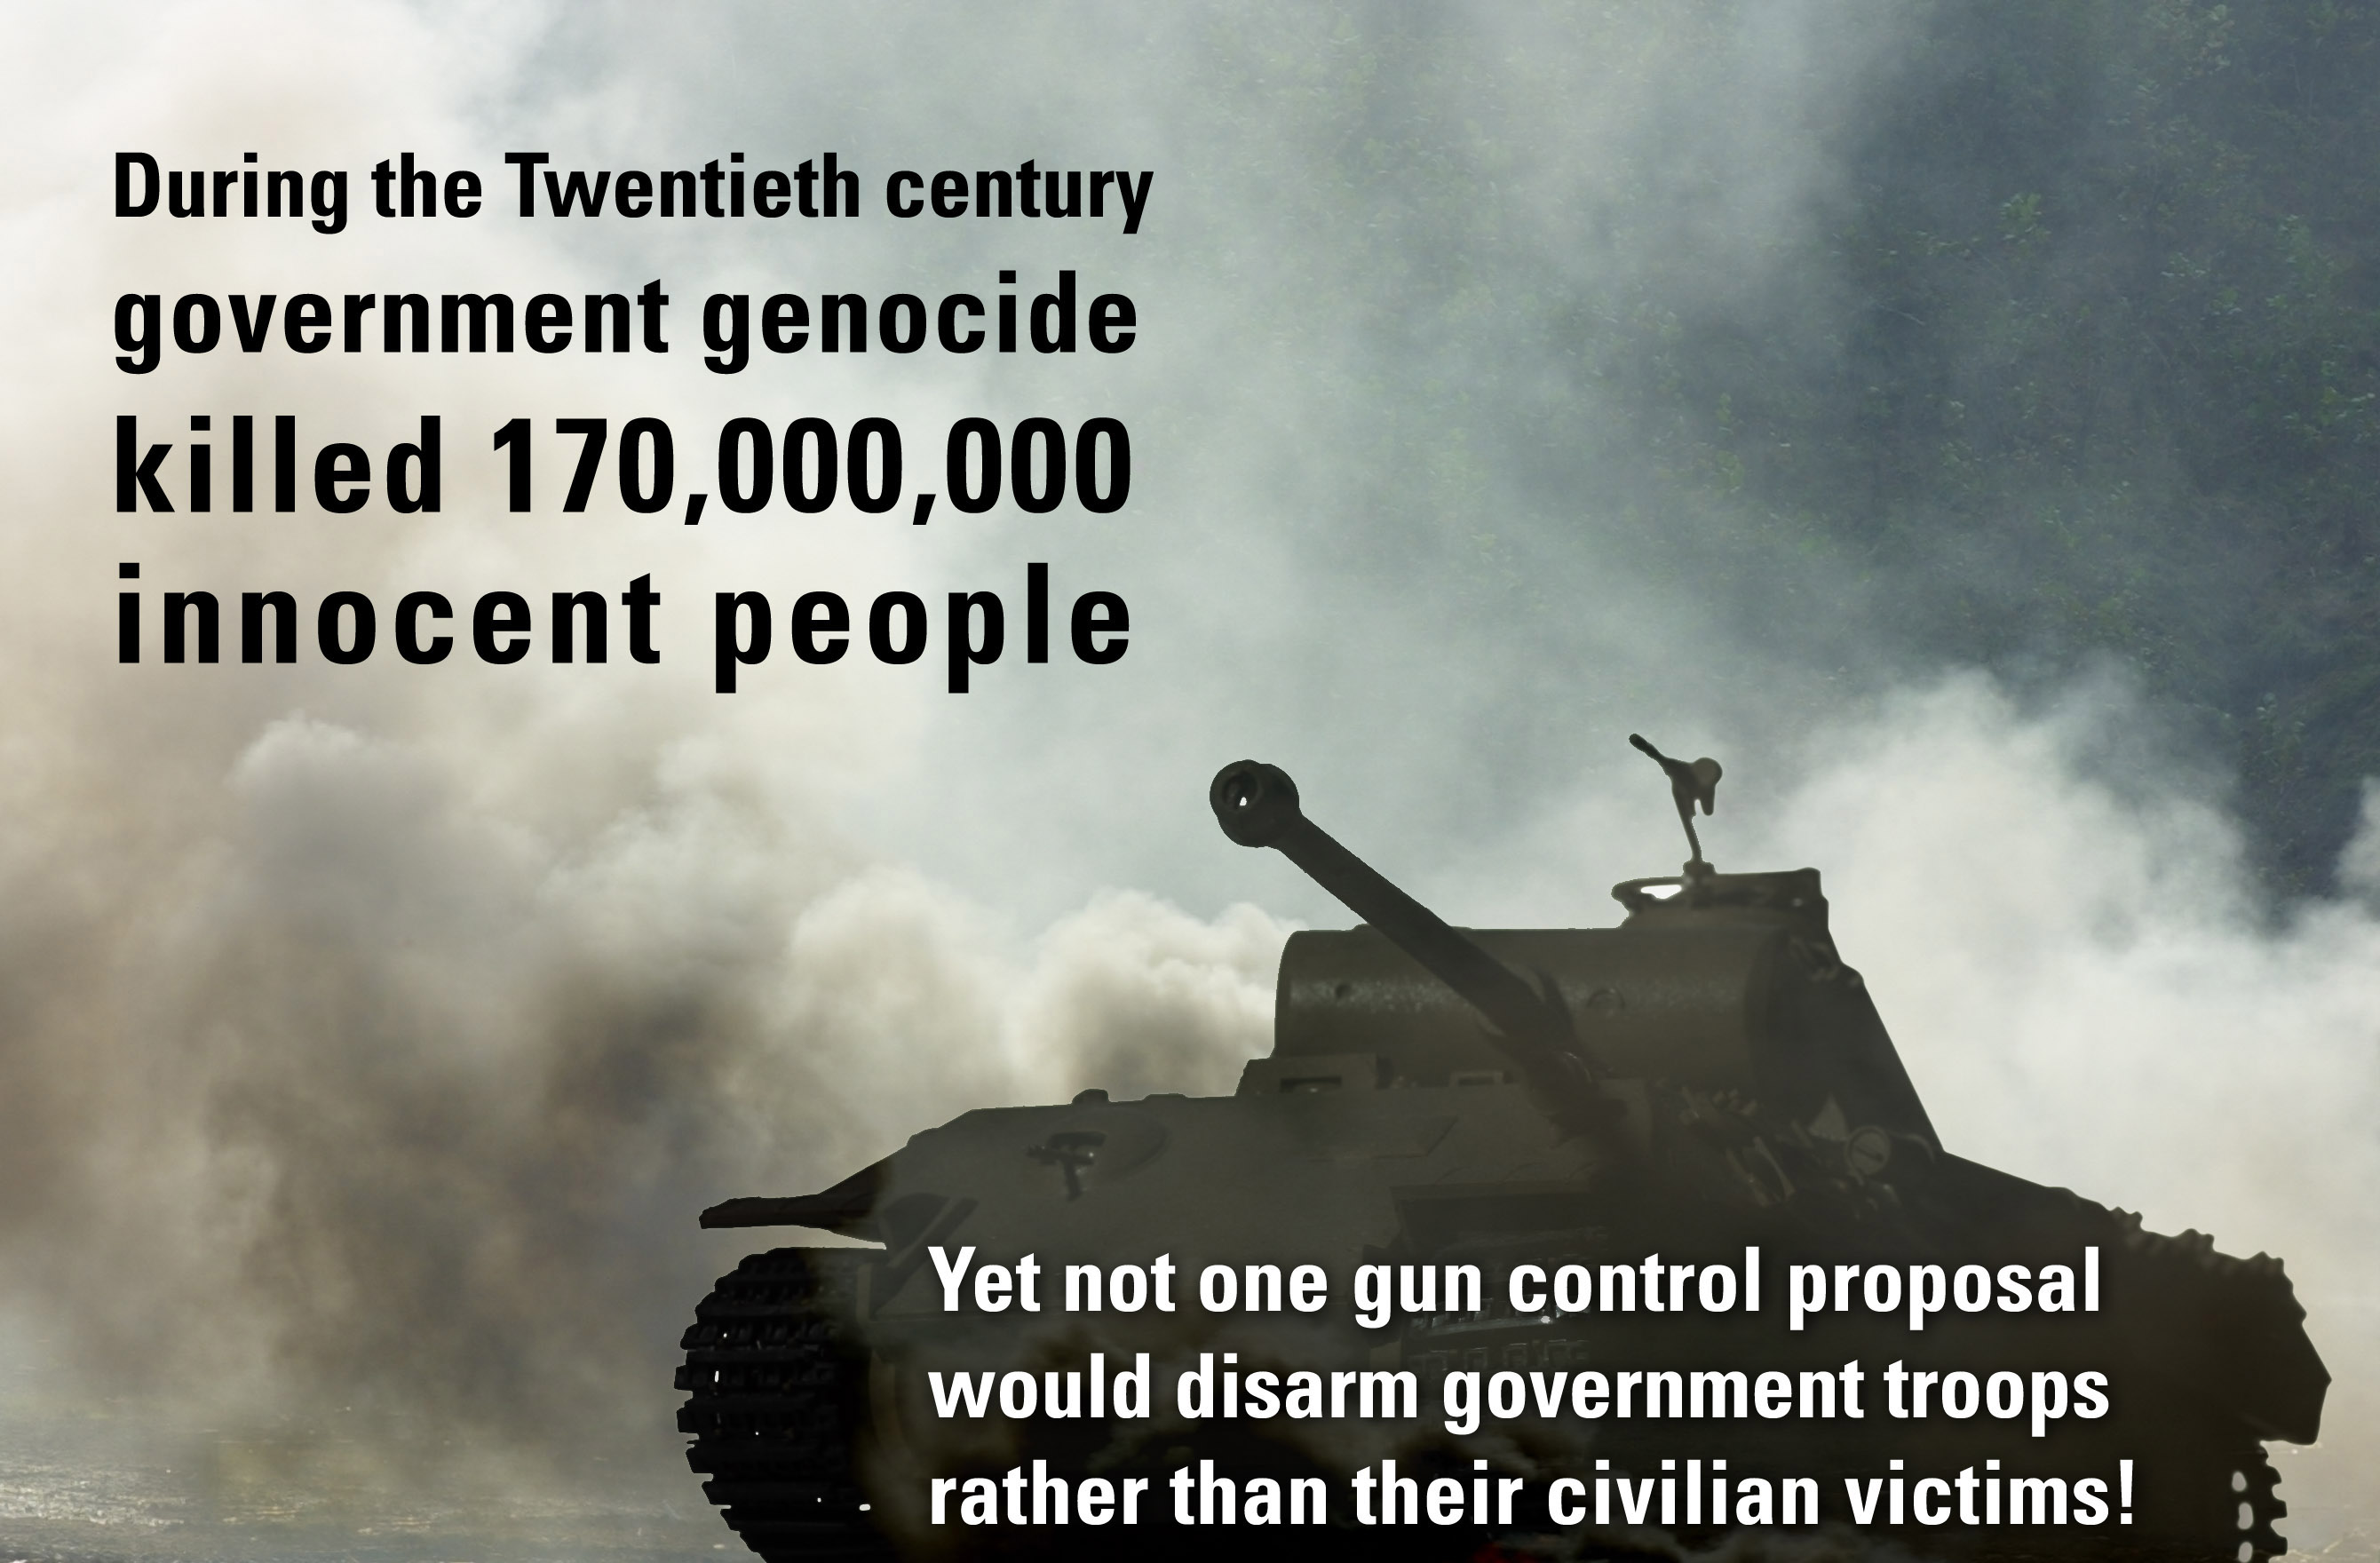 Pro-Gun, Pro-Defense Saying and Pictures-20th-20century-20genocide.jpg